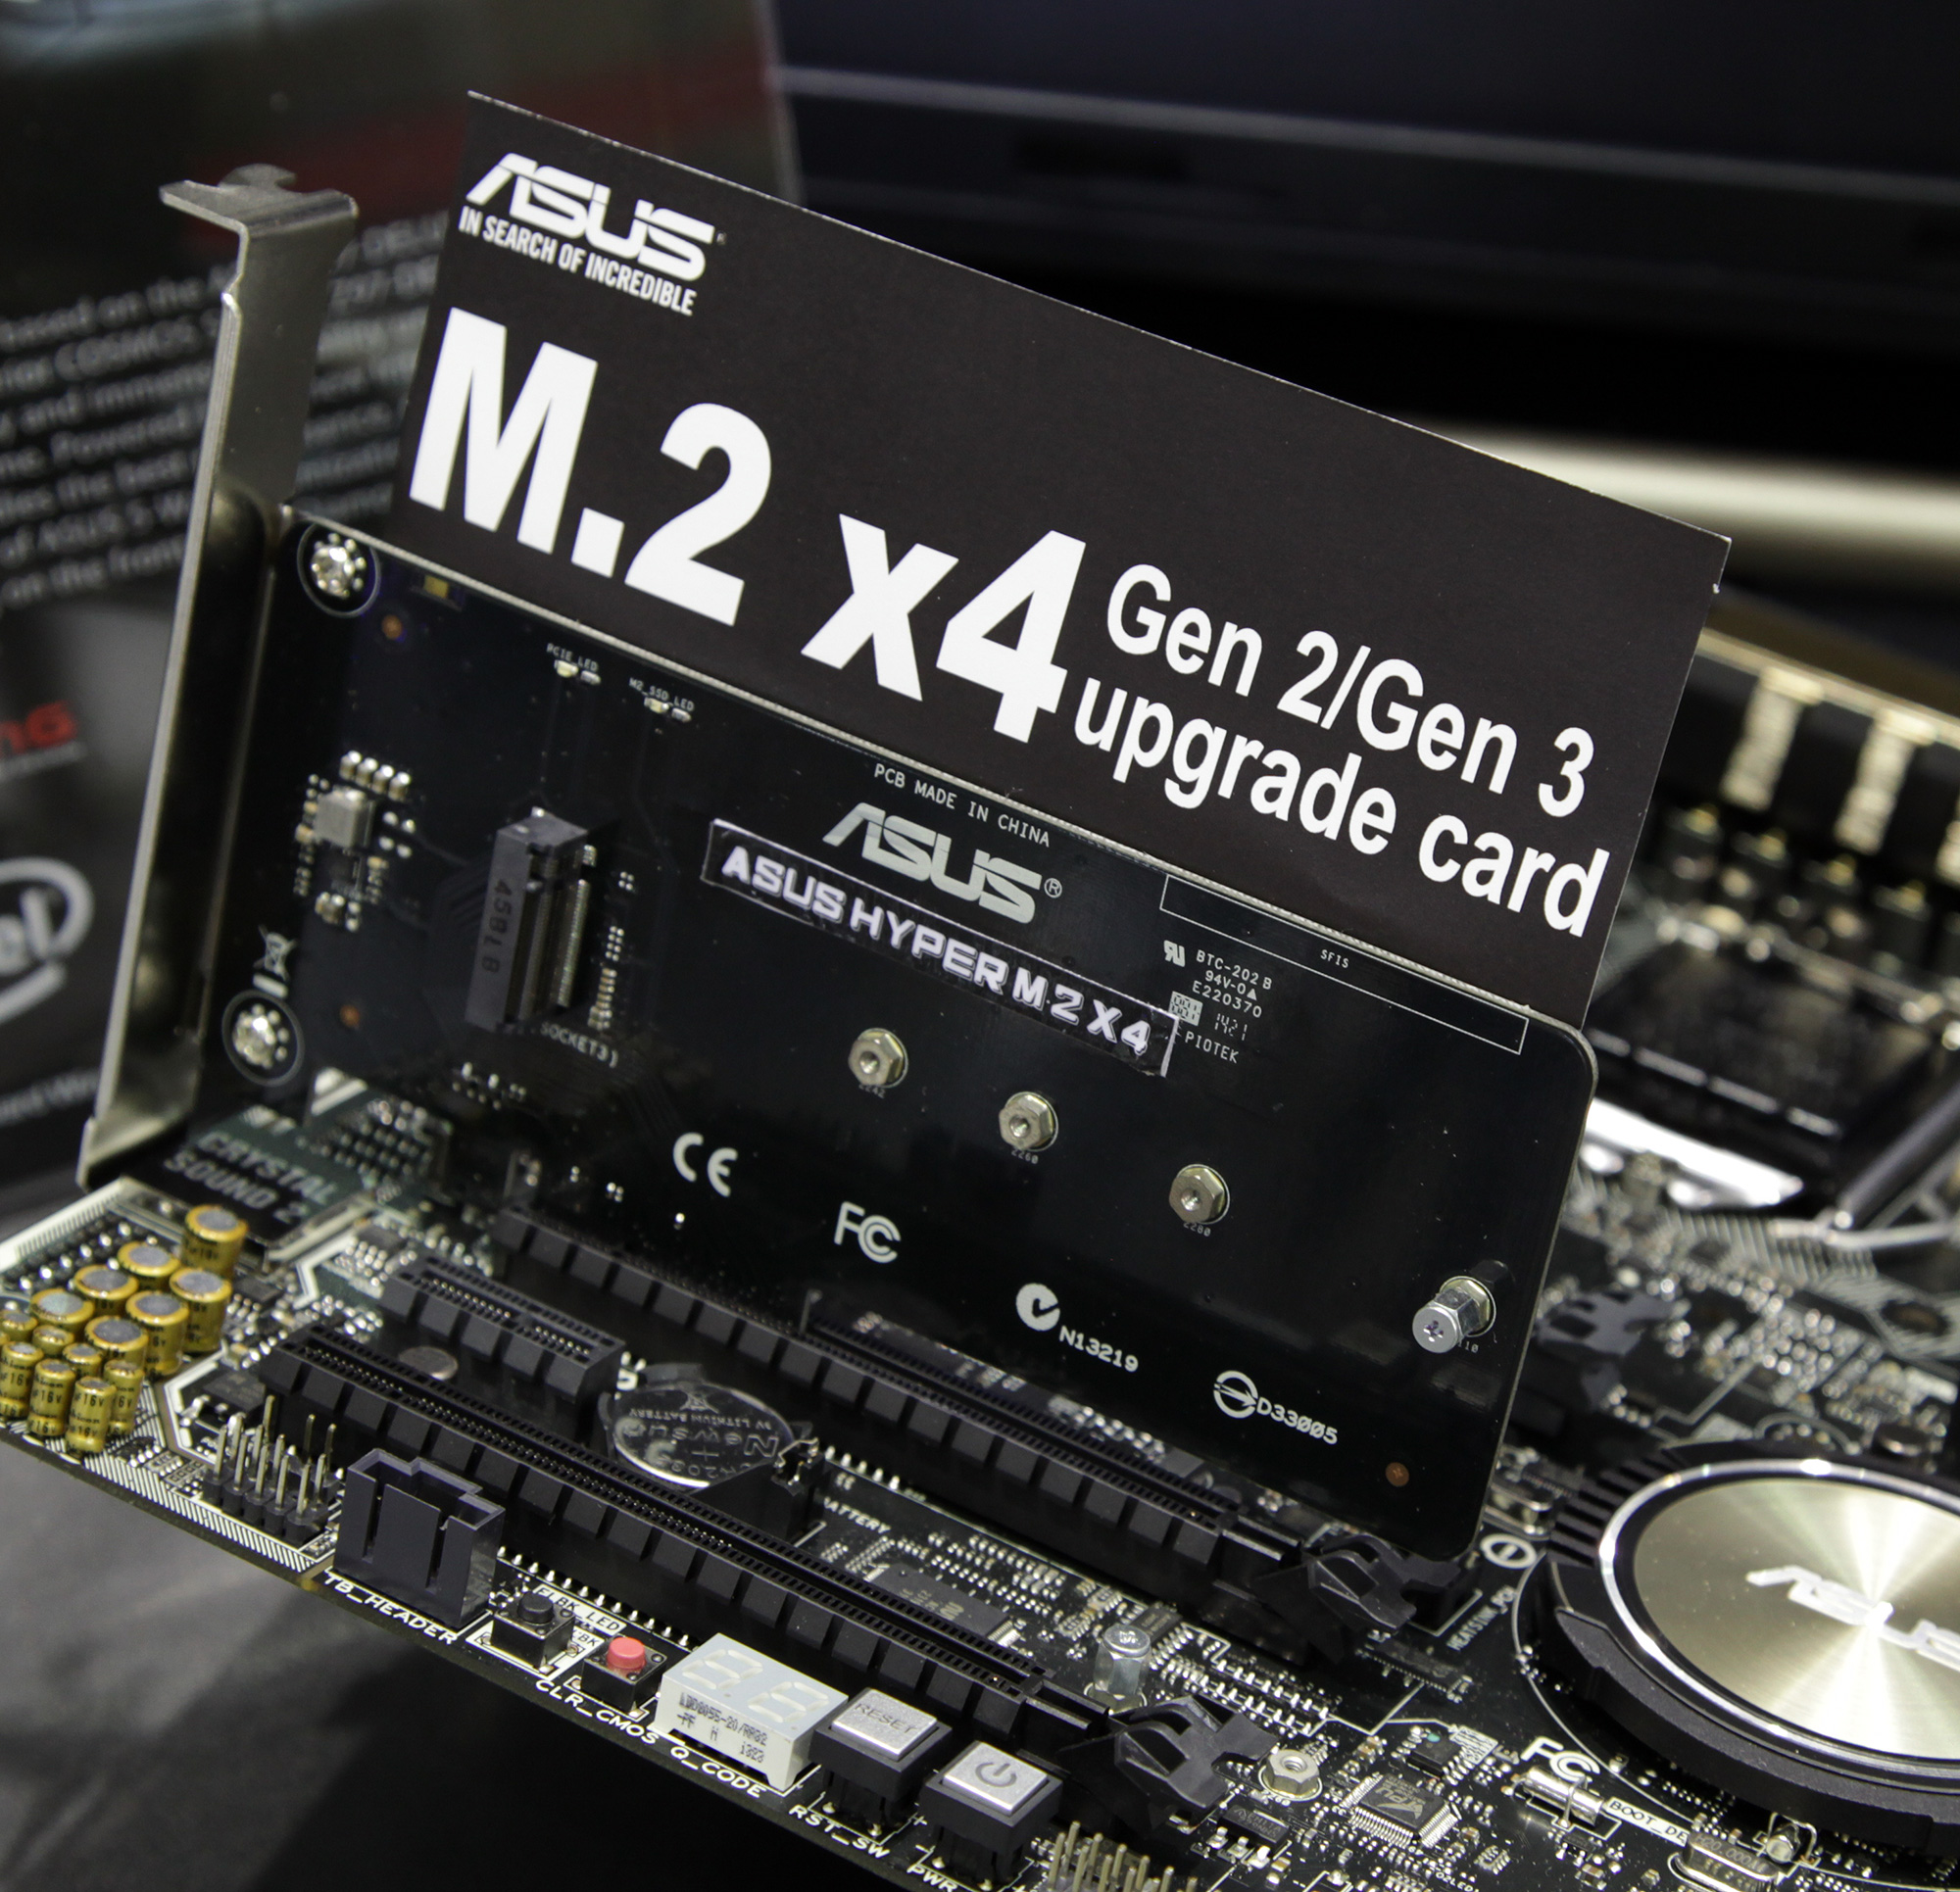 ASUS Hyper M.2 X4 - PCI-Express Gen2/3 to M.2 x4 SSD Adapter CardRelated Articles